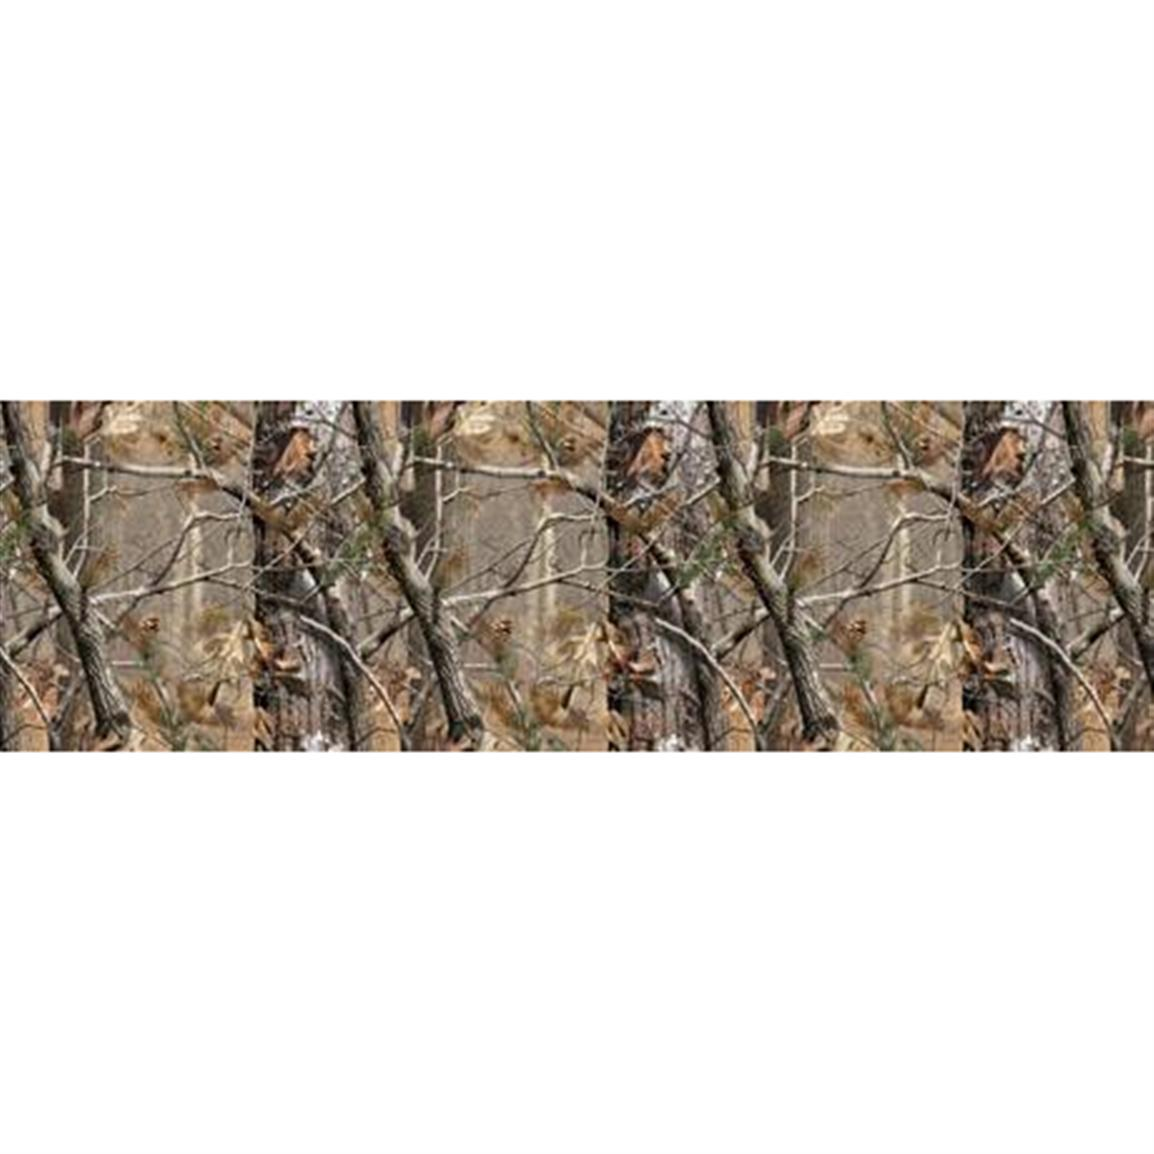 Vantage Point Concepts Realtree AP Window Graphics